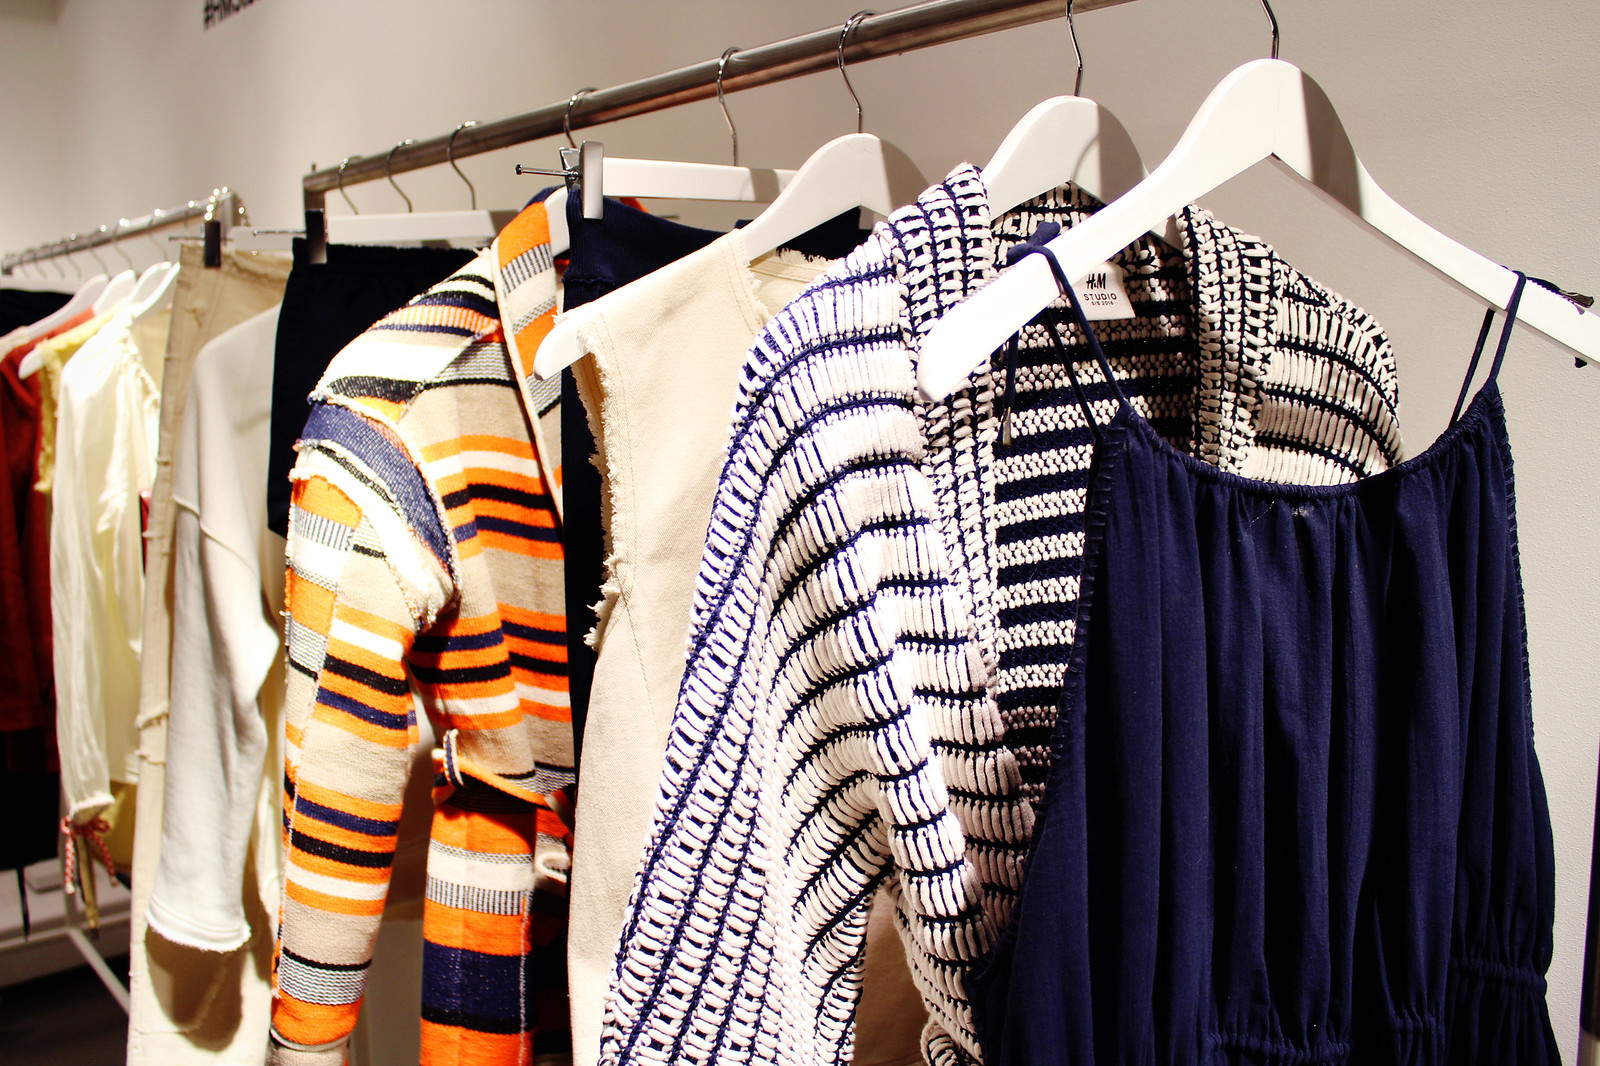 H&M Studio SS 16 collection preview knits